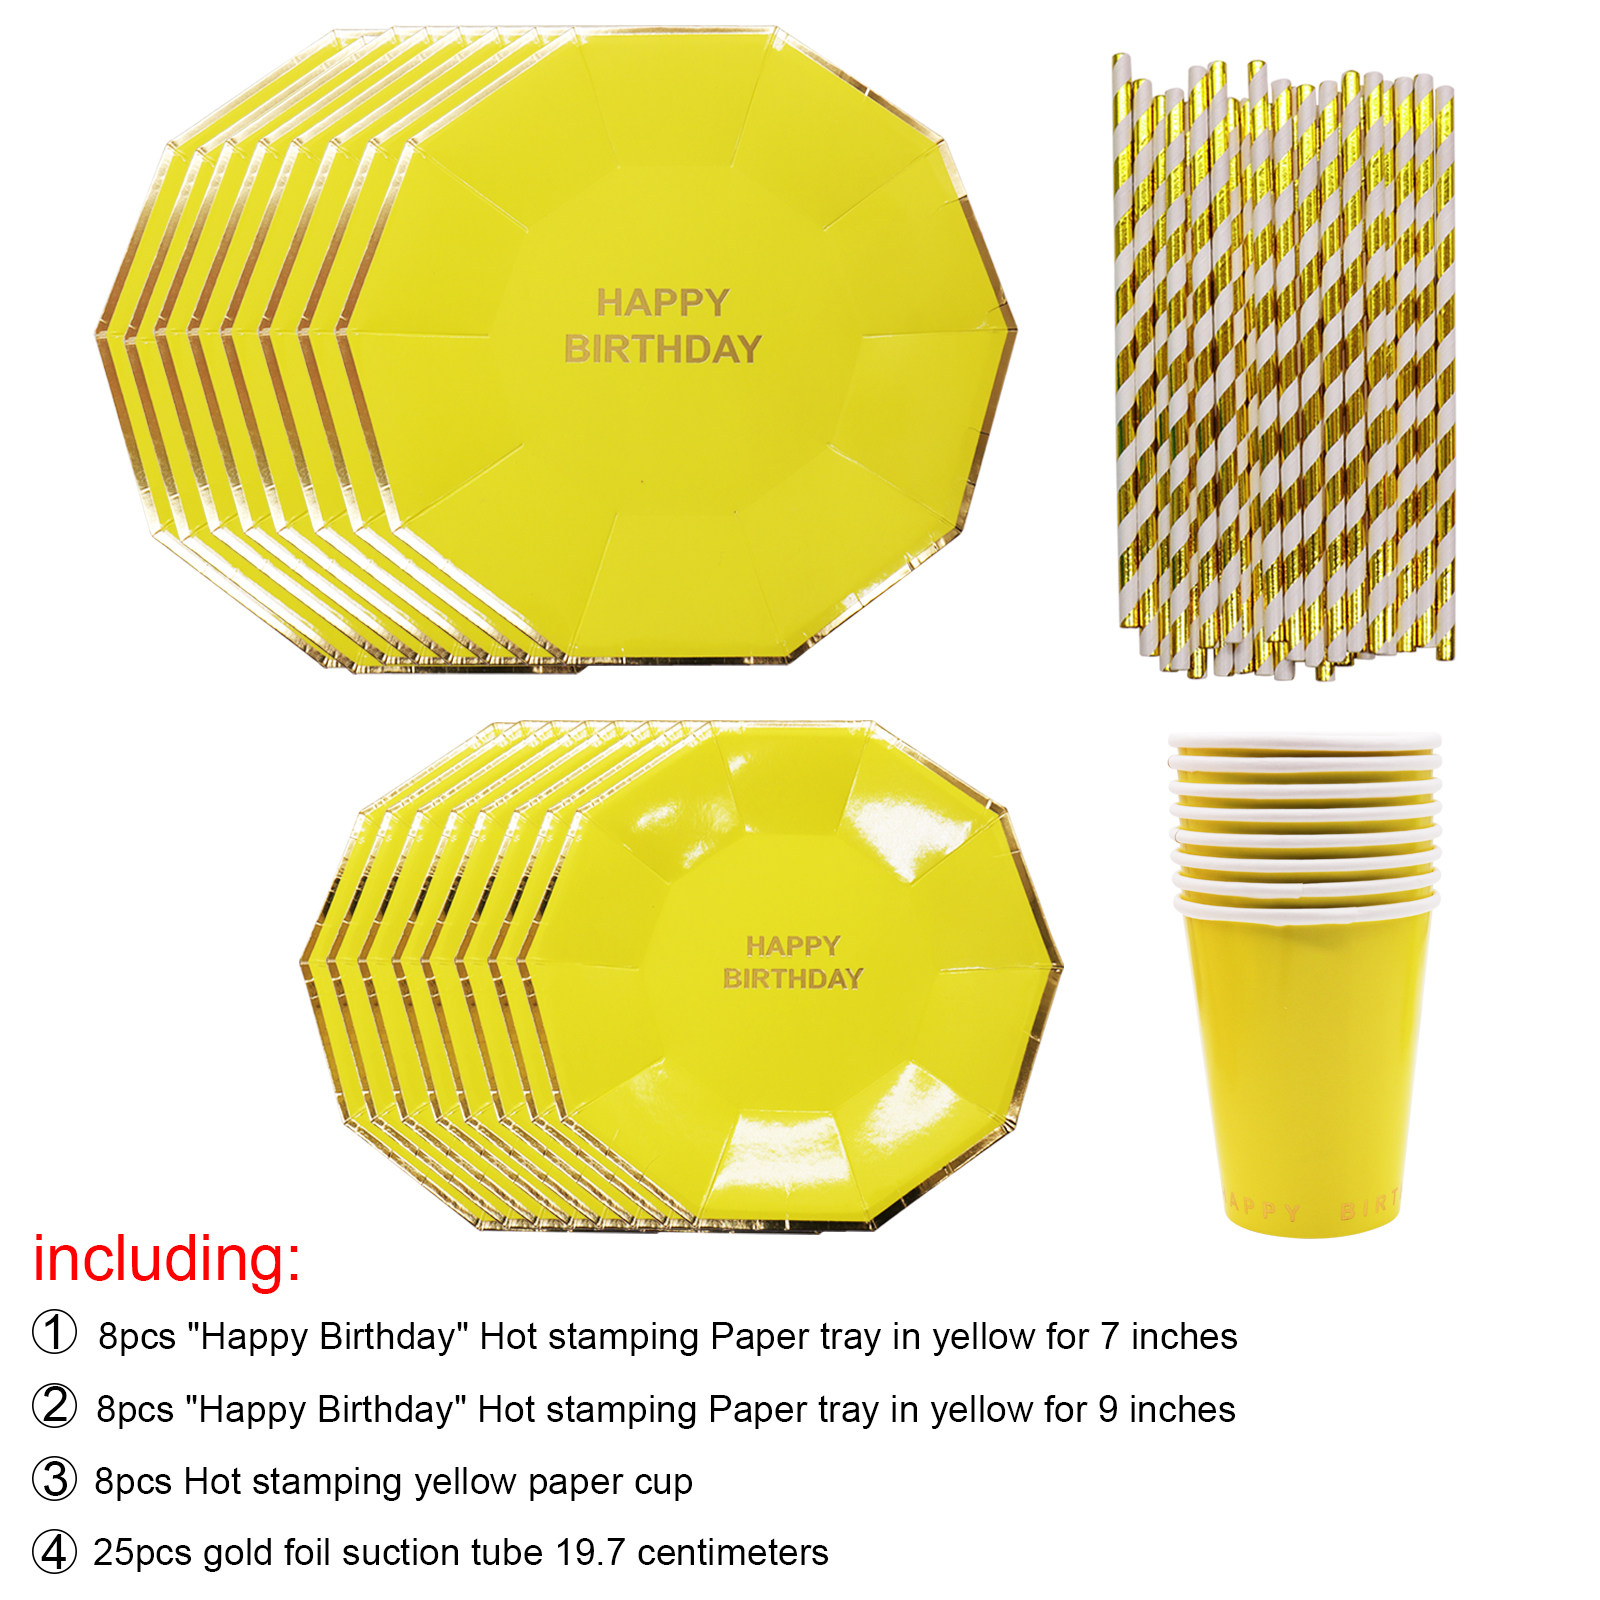 1set Birthday Crockery Disposable Plates 8 Pcs Small Plate+8 Pcs Bigger Plate+8 Pieces Paper Cup+25 Straw Party Supplies-in Disposable Party Tableware from ...  sc 1 st  AliExpress.com & 1set Birthday Crockery Disposable Plates 8 Pcs Small Plate+8 Pcs ...